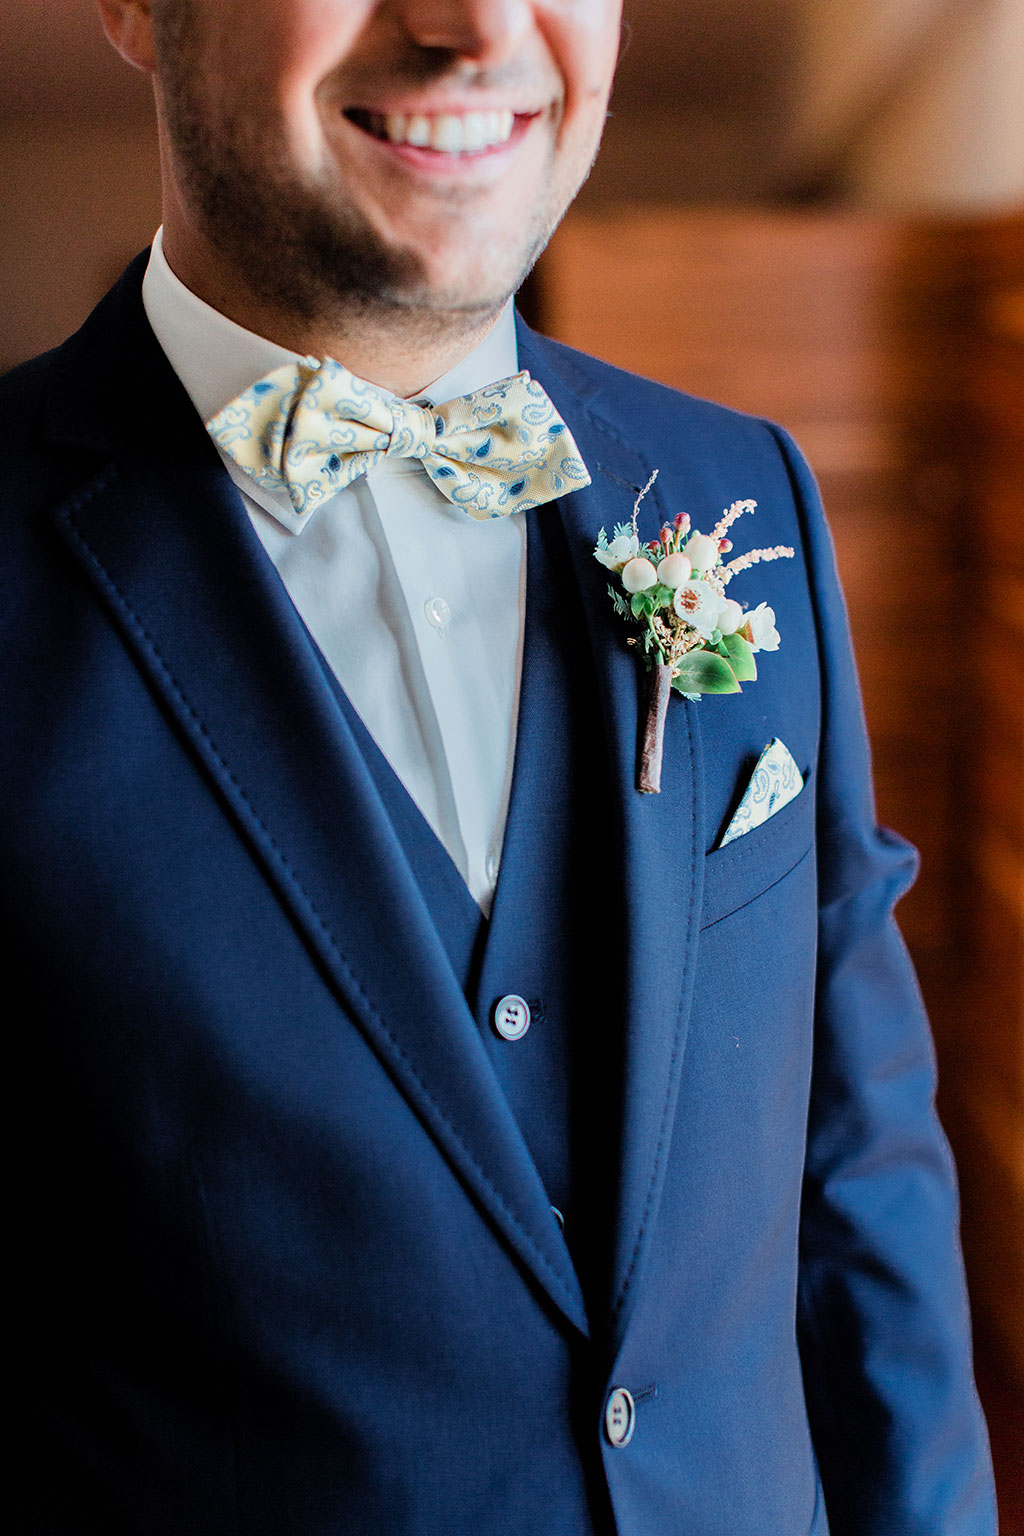 The beautiful boutonniere for the groom